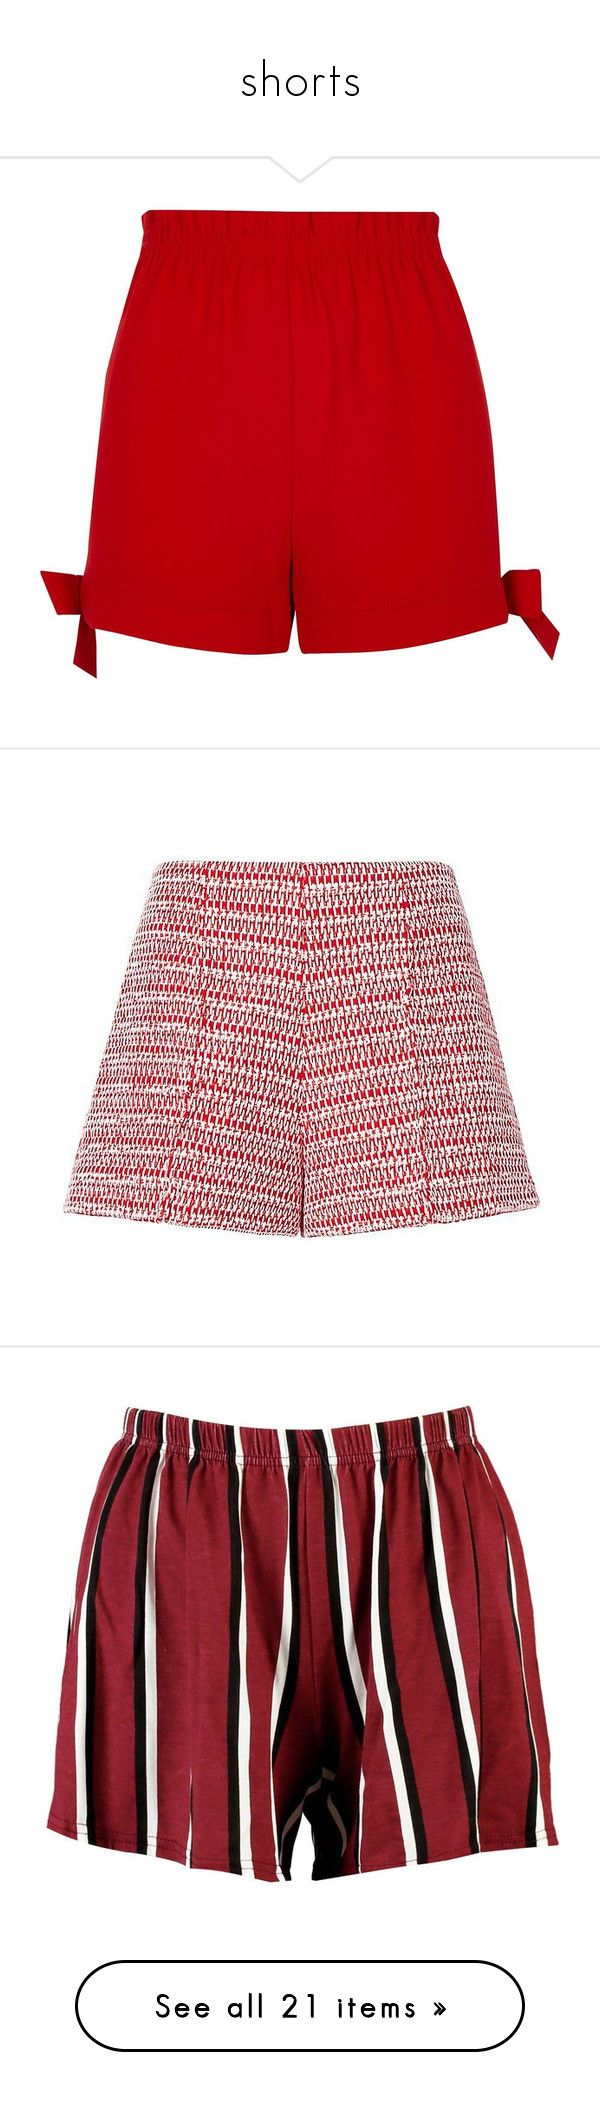 """shorts"" by harthkai on Polyvore featuring shorts, casual shorts, red, women, elastic high waisted shorts, stretch waist shorts, woven shorts, high-rise shorts, red high waisted shorts and bottoms"